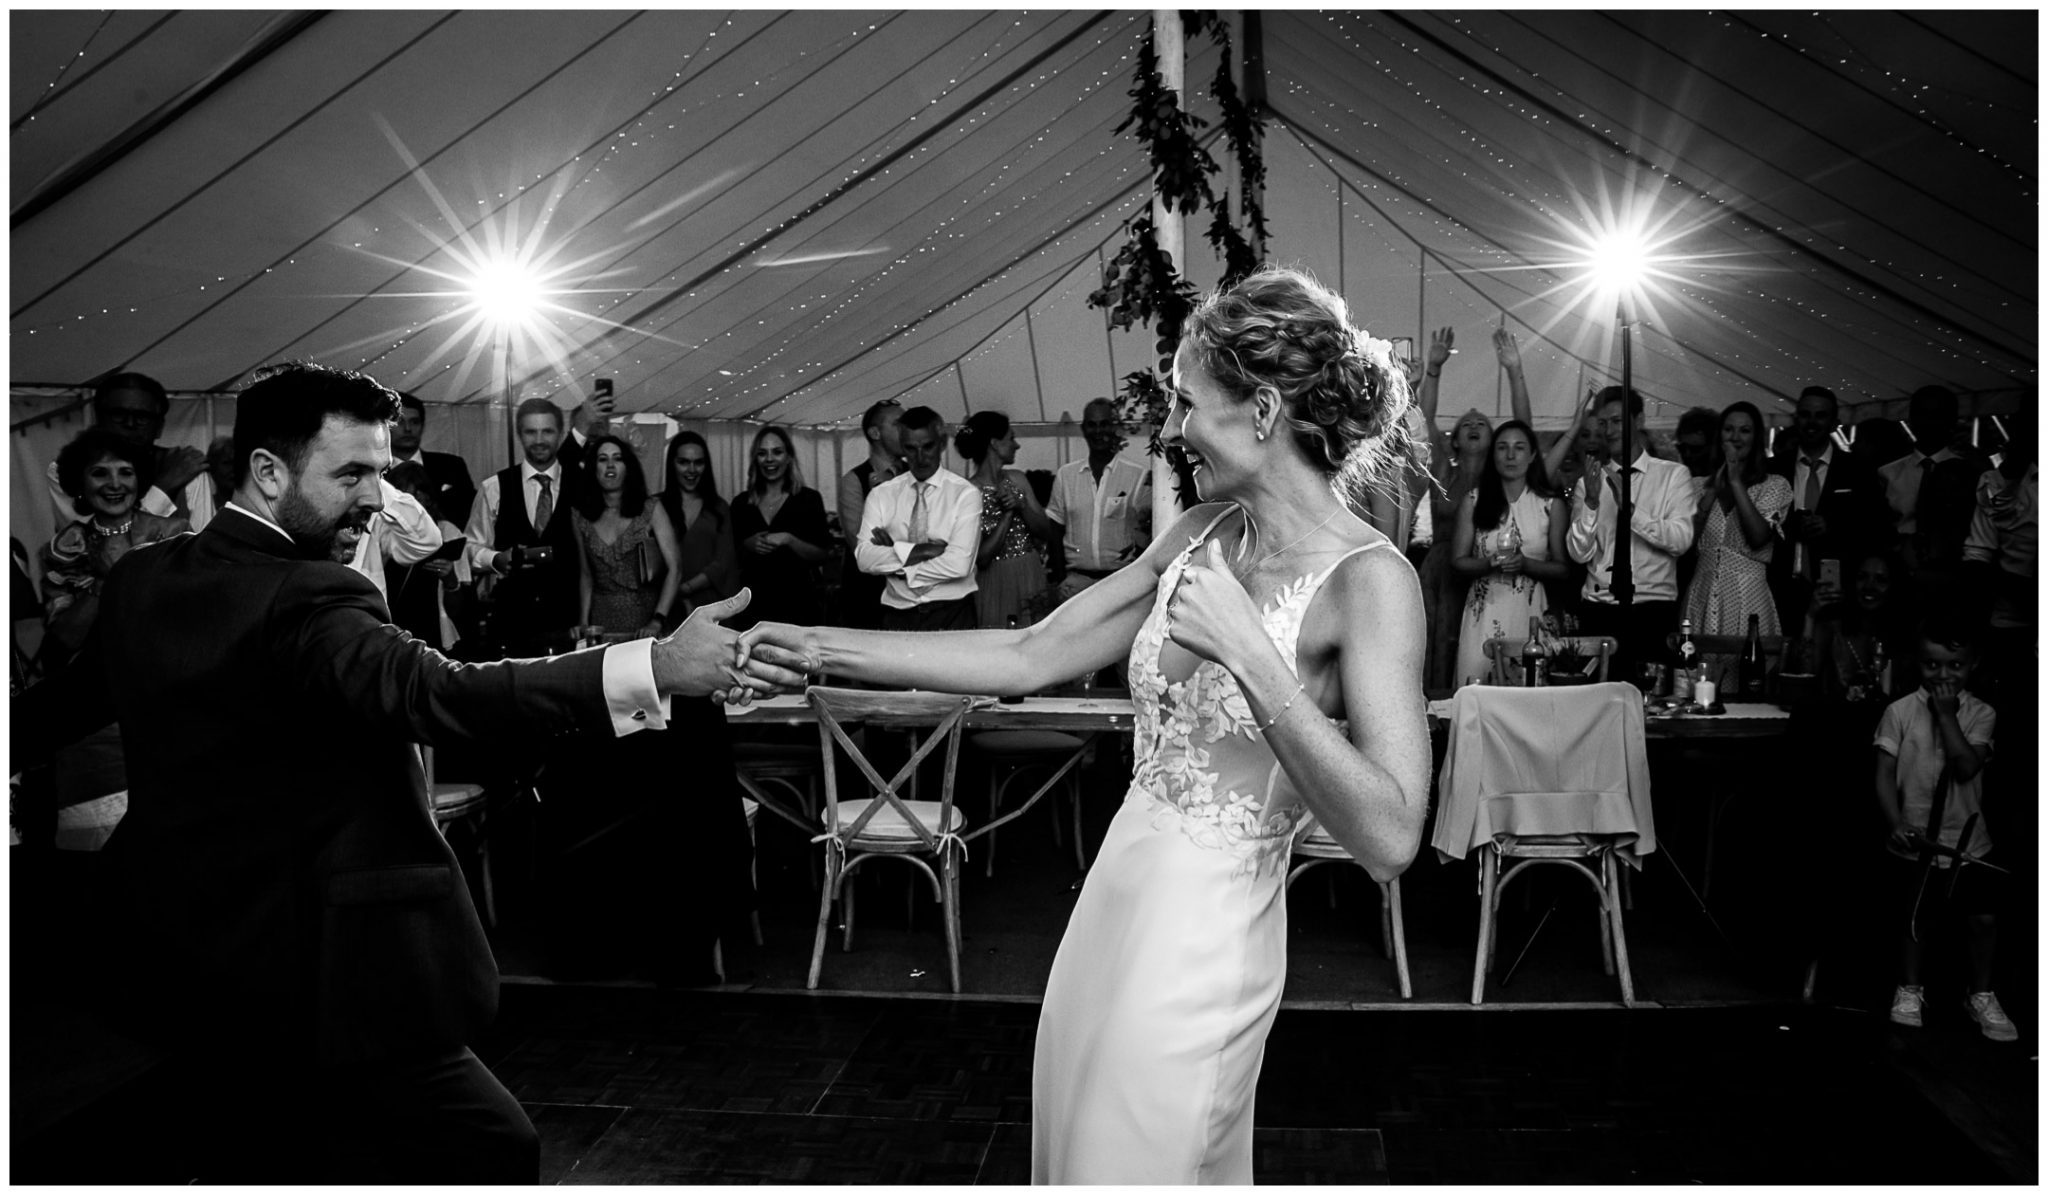 Black and white photo of wedding couple's first dance